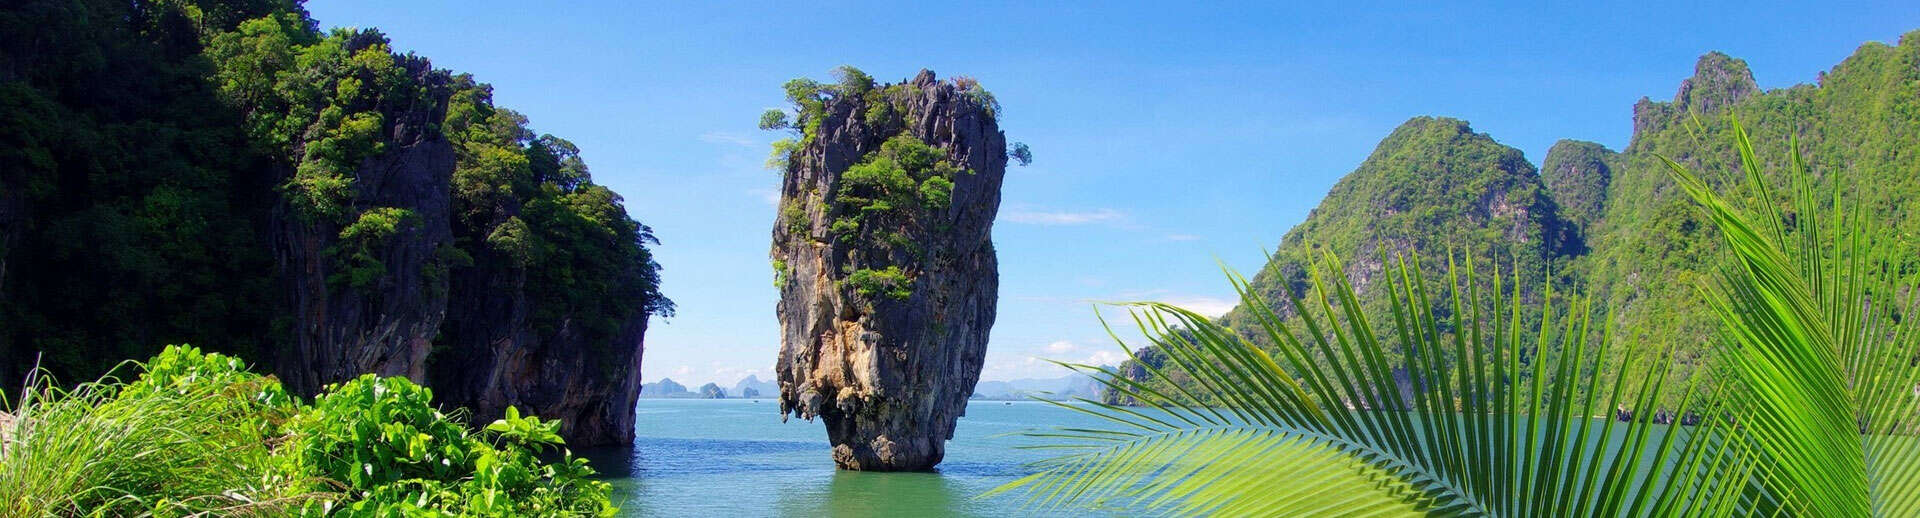 James Bond Island By Speedboat With Sea Canoeing